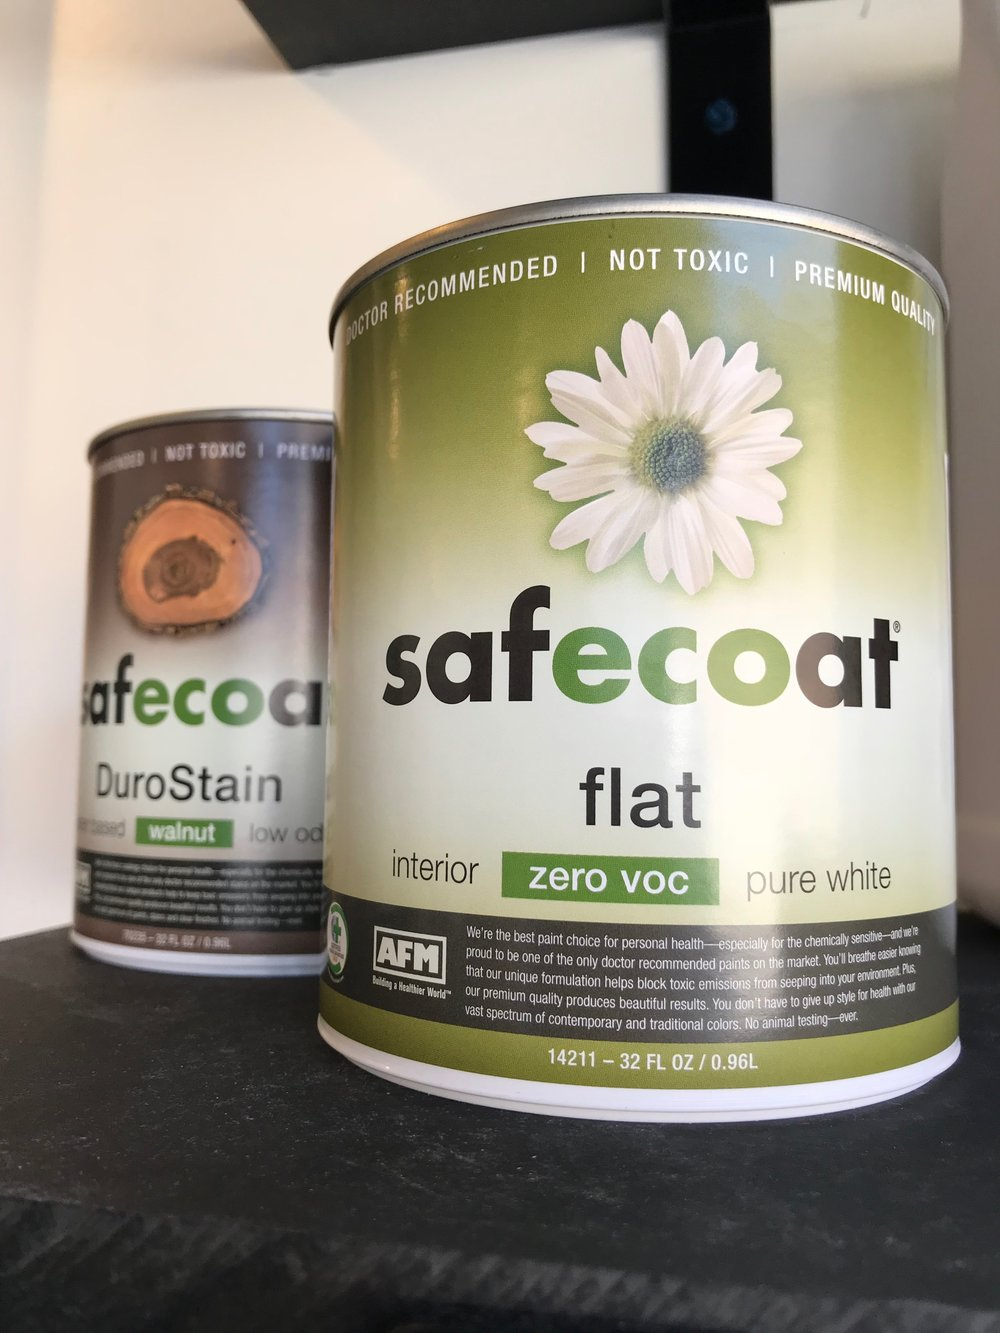 Pictured: AFM safecoat interior paint (quart size)